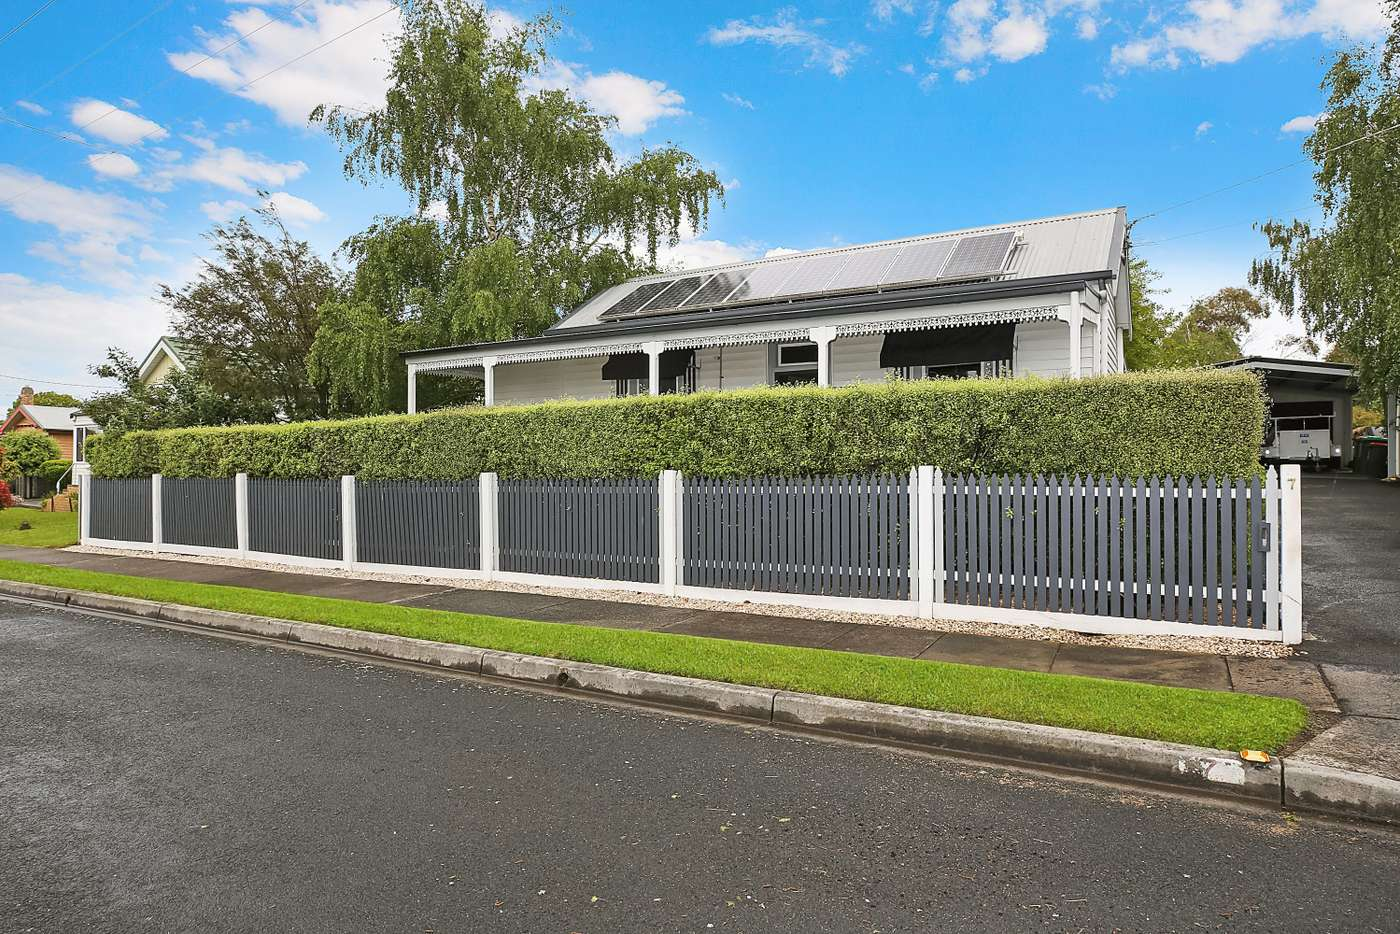 Main view of Homely house listing, 7 Little Street, Camperdown VIC 3260